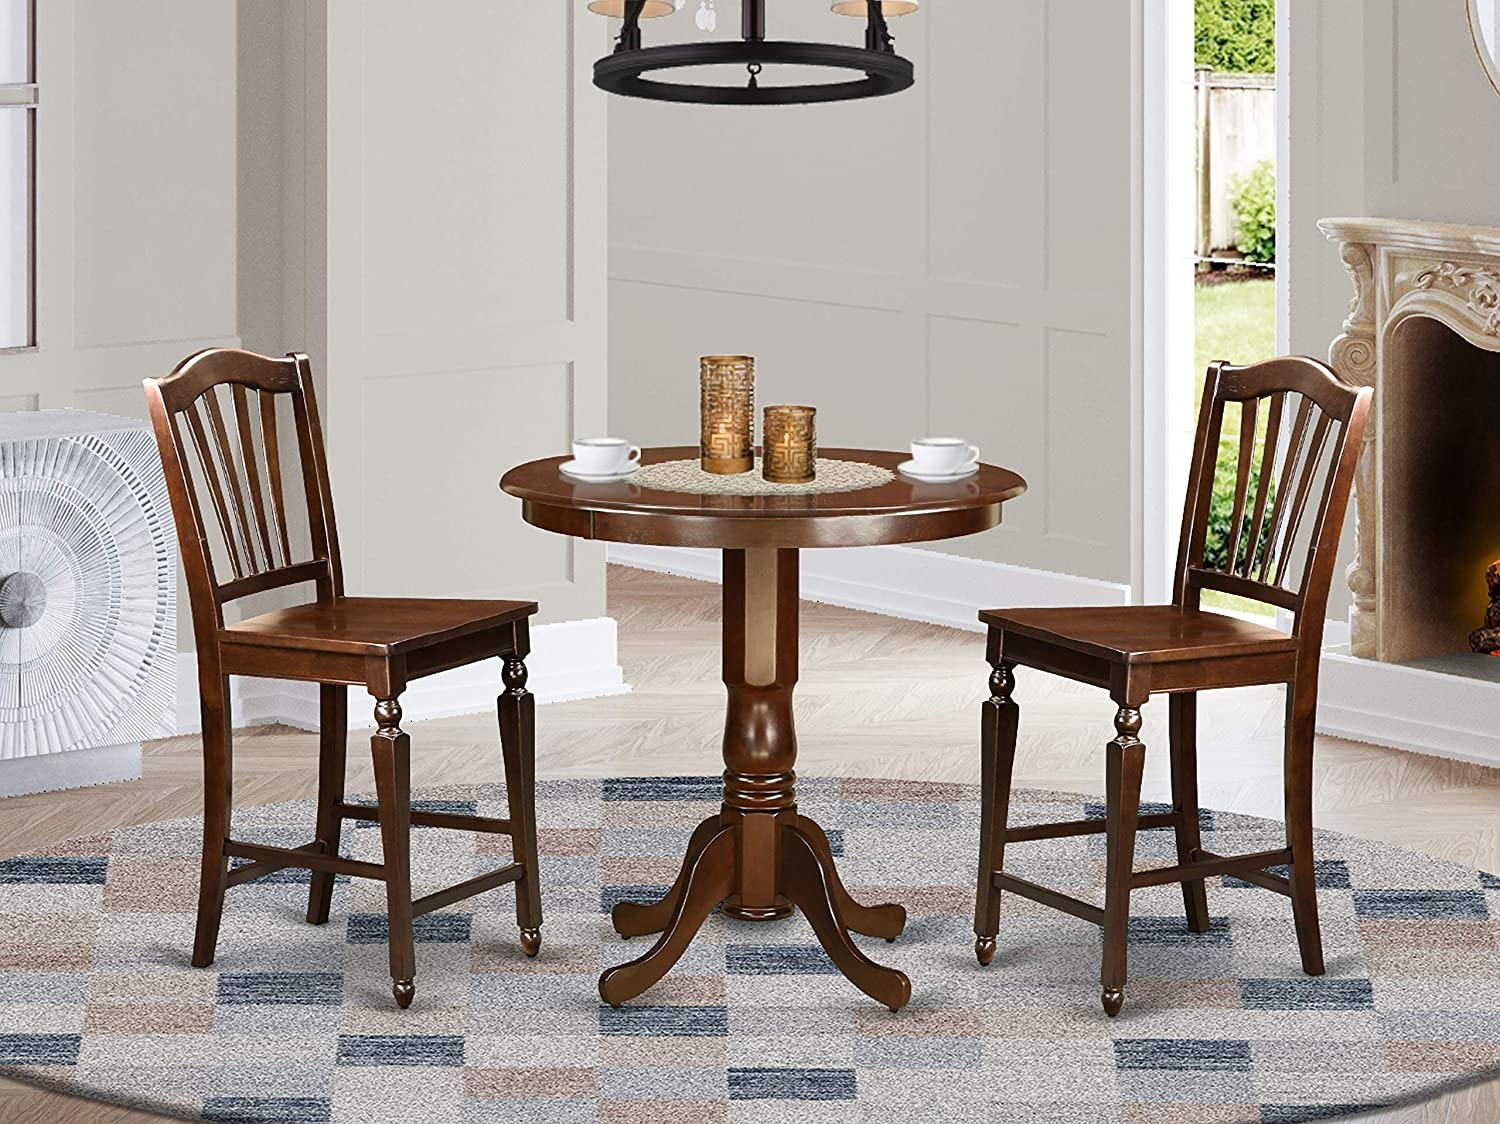 3 PC counter height set-pub Table and 2 counter height Dining chair